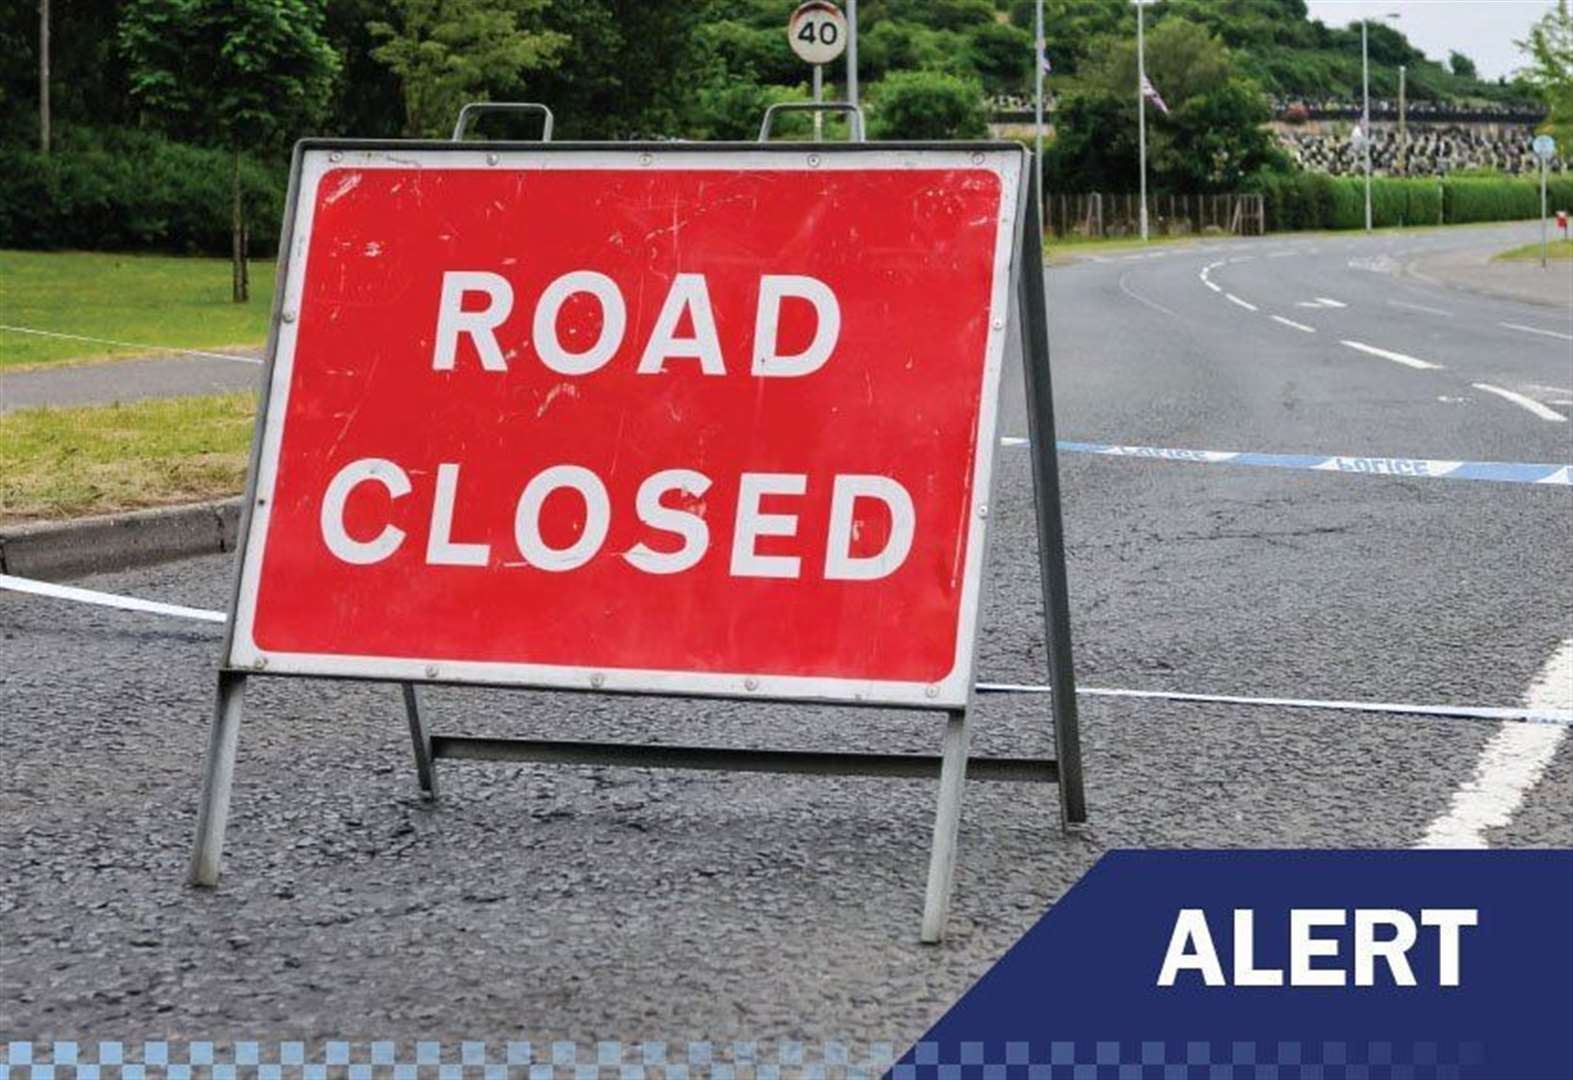 Road open again after accident